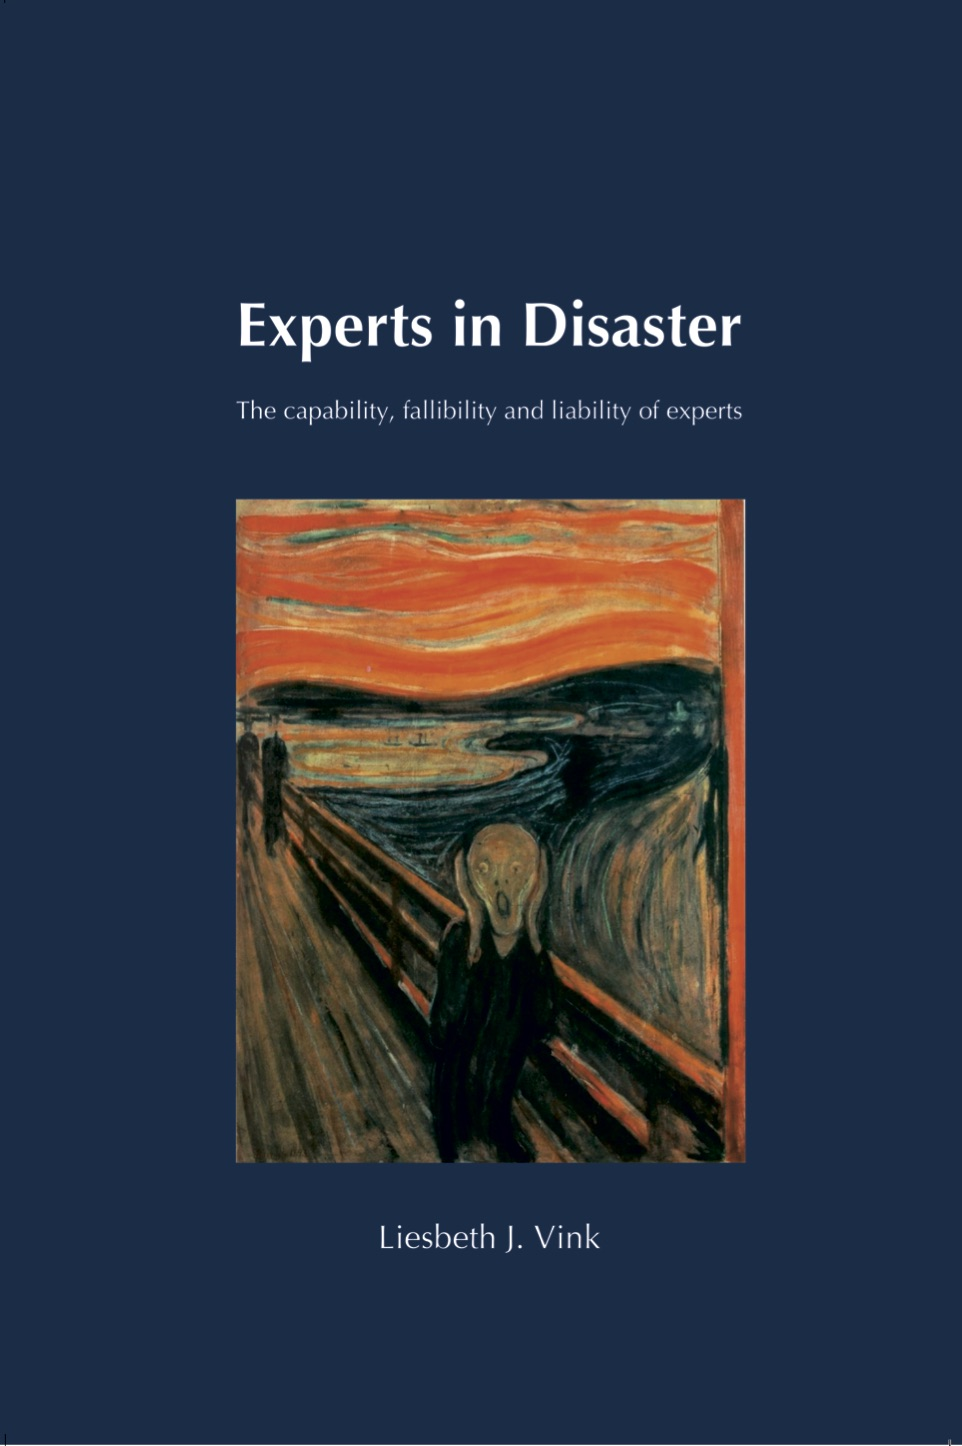 Experts in disaster